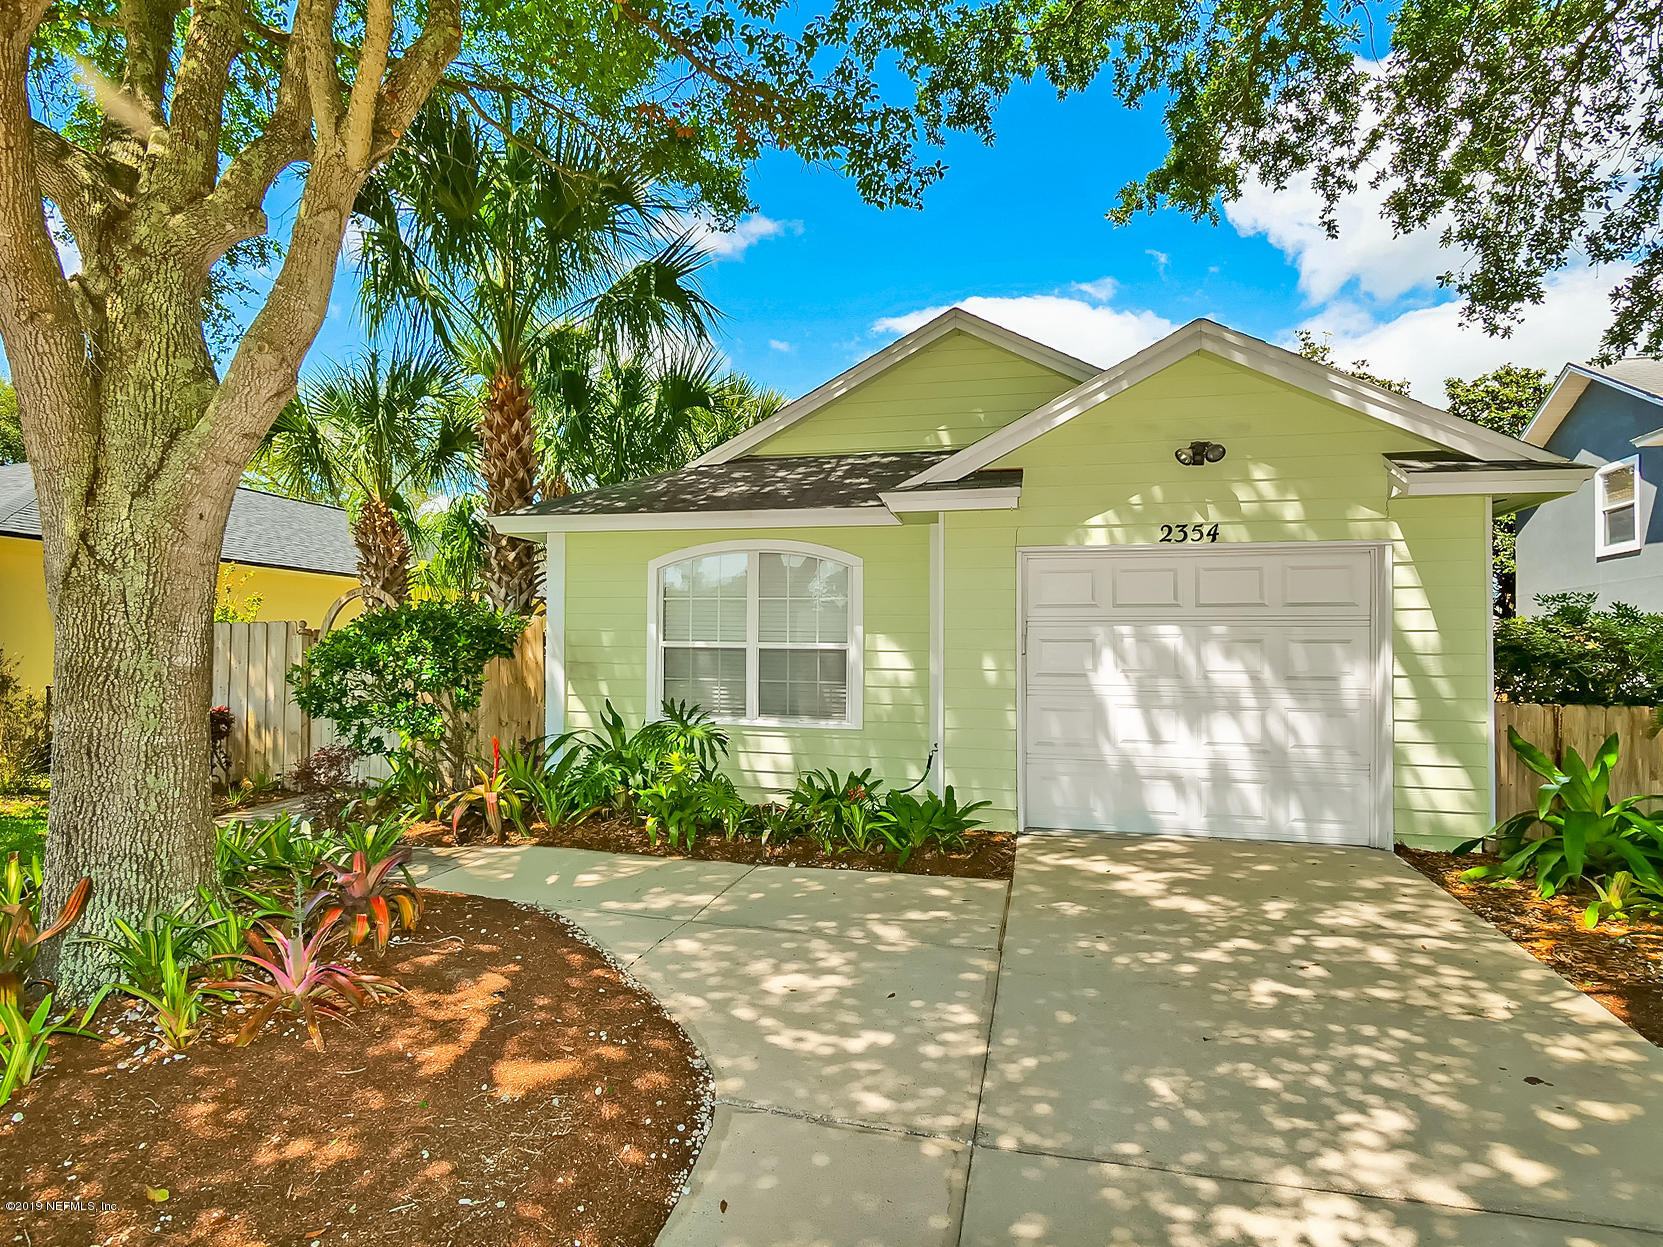 Photo of 2354 SOUTH BEACH, JACKSONVILLE BEACH, FL 32250